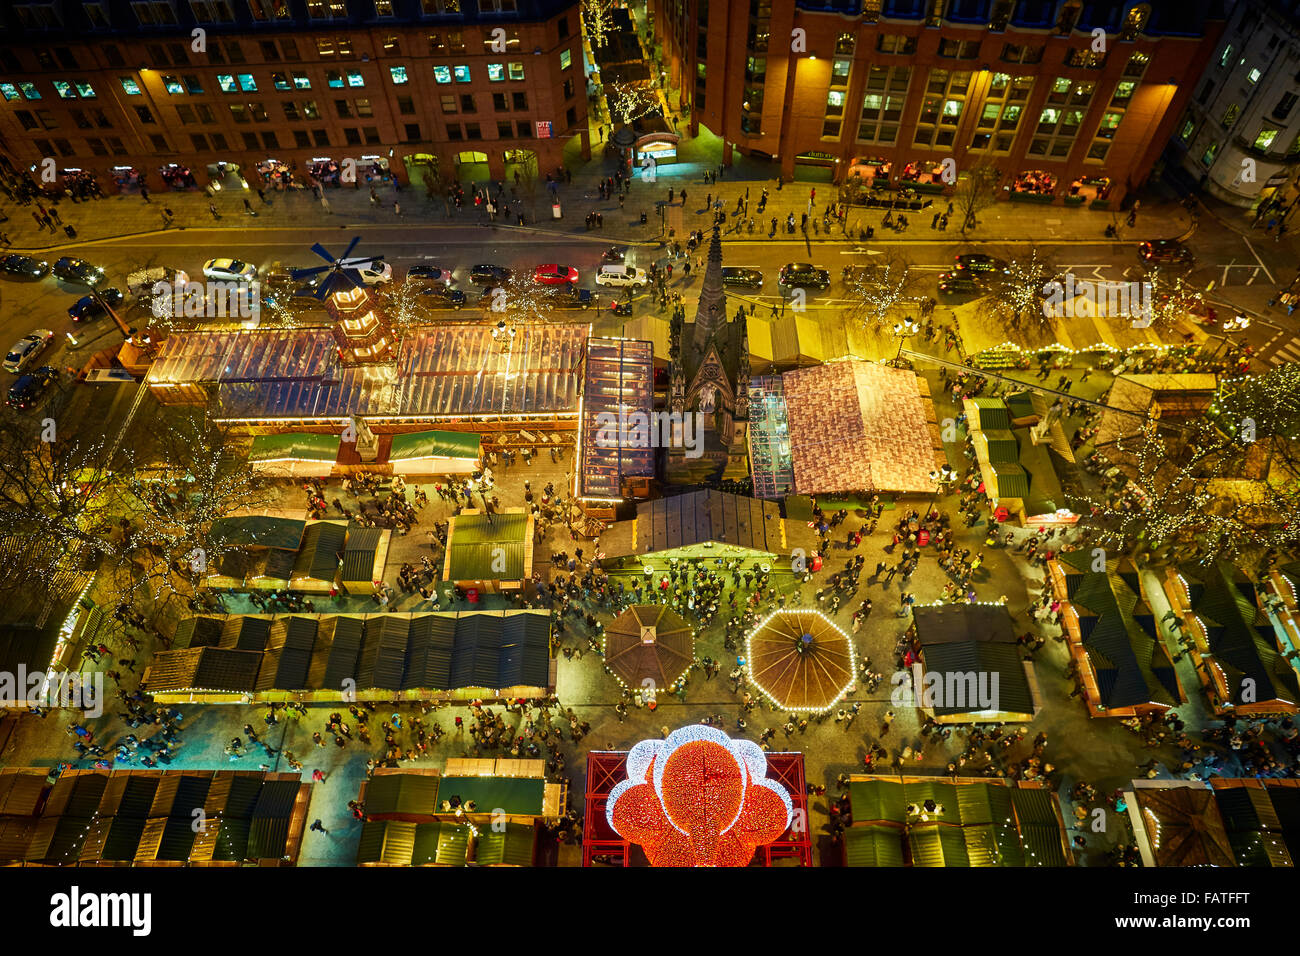 Manchester city centre German style Christmas Markets 2015